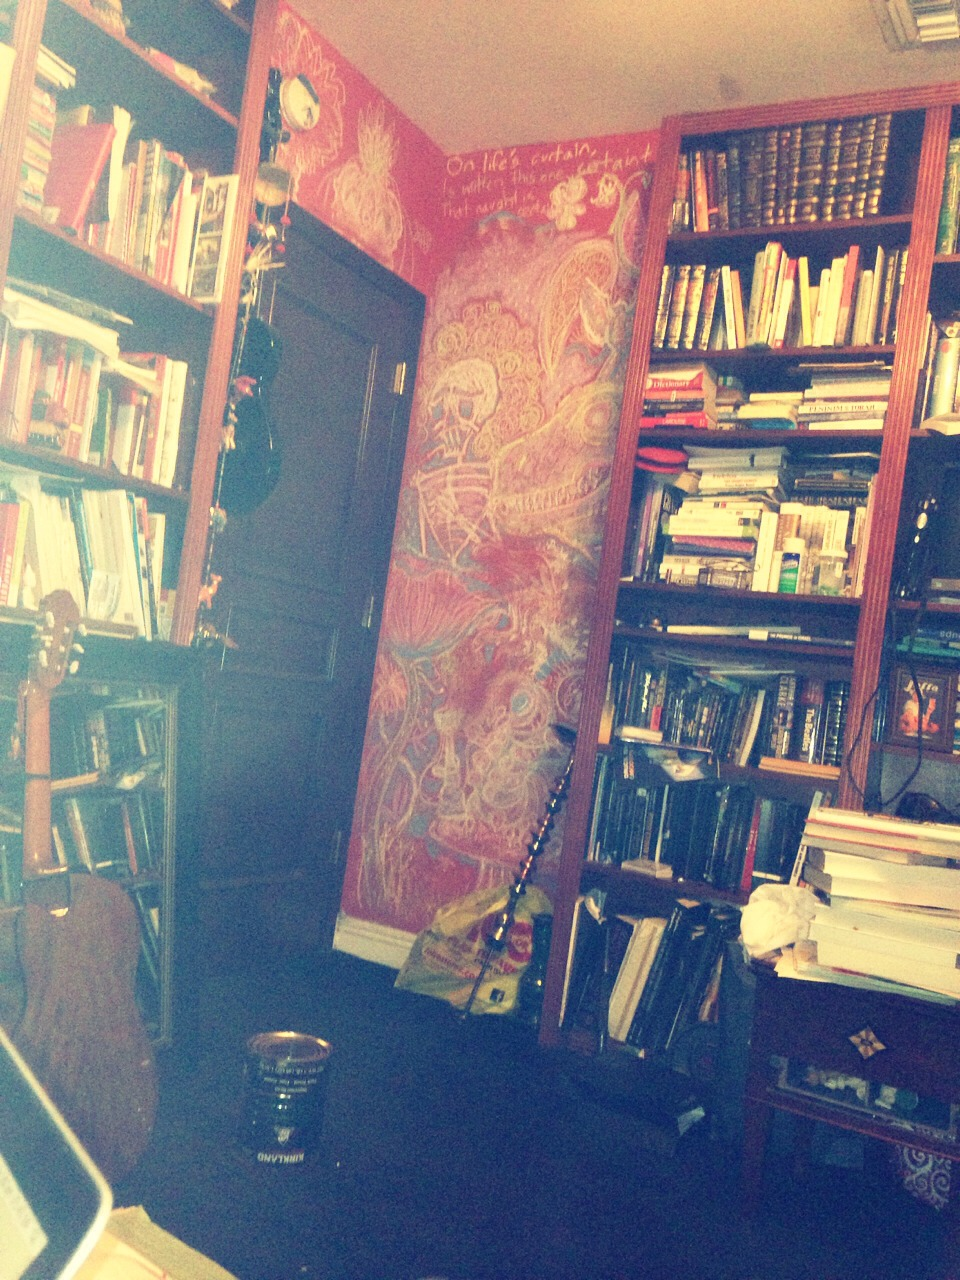 That's a room. Don't read a book, draw on the walls, play an instrument. PLAY ON YOUR IPHONE! It's way more fun!